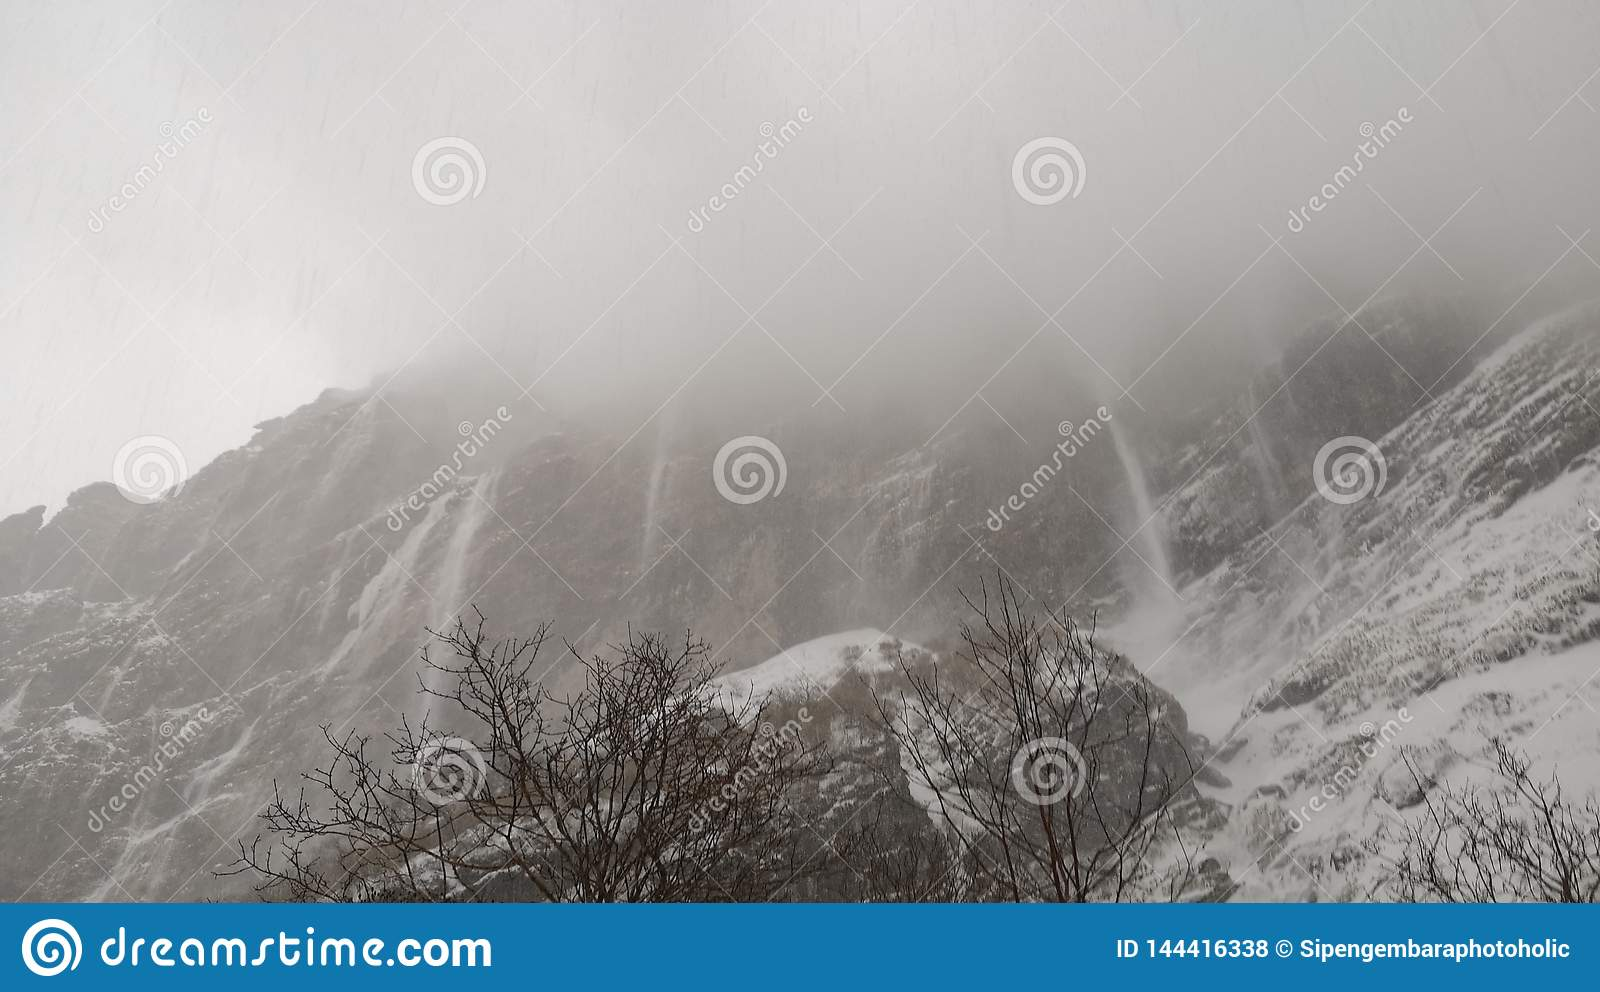 Himalaya Halle Avalanche Himalaya To Mbc Stock Photo. Image Of Trekking - 144416338